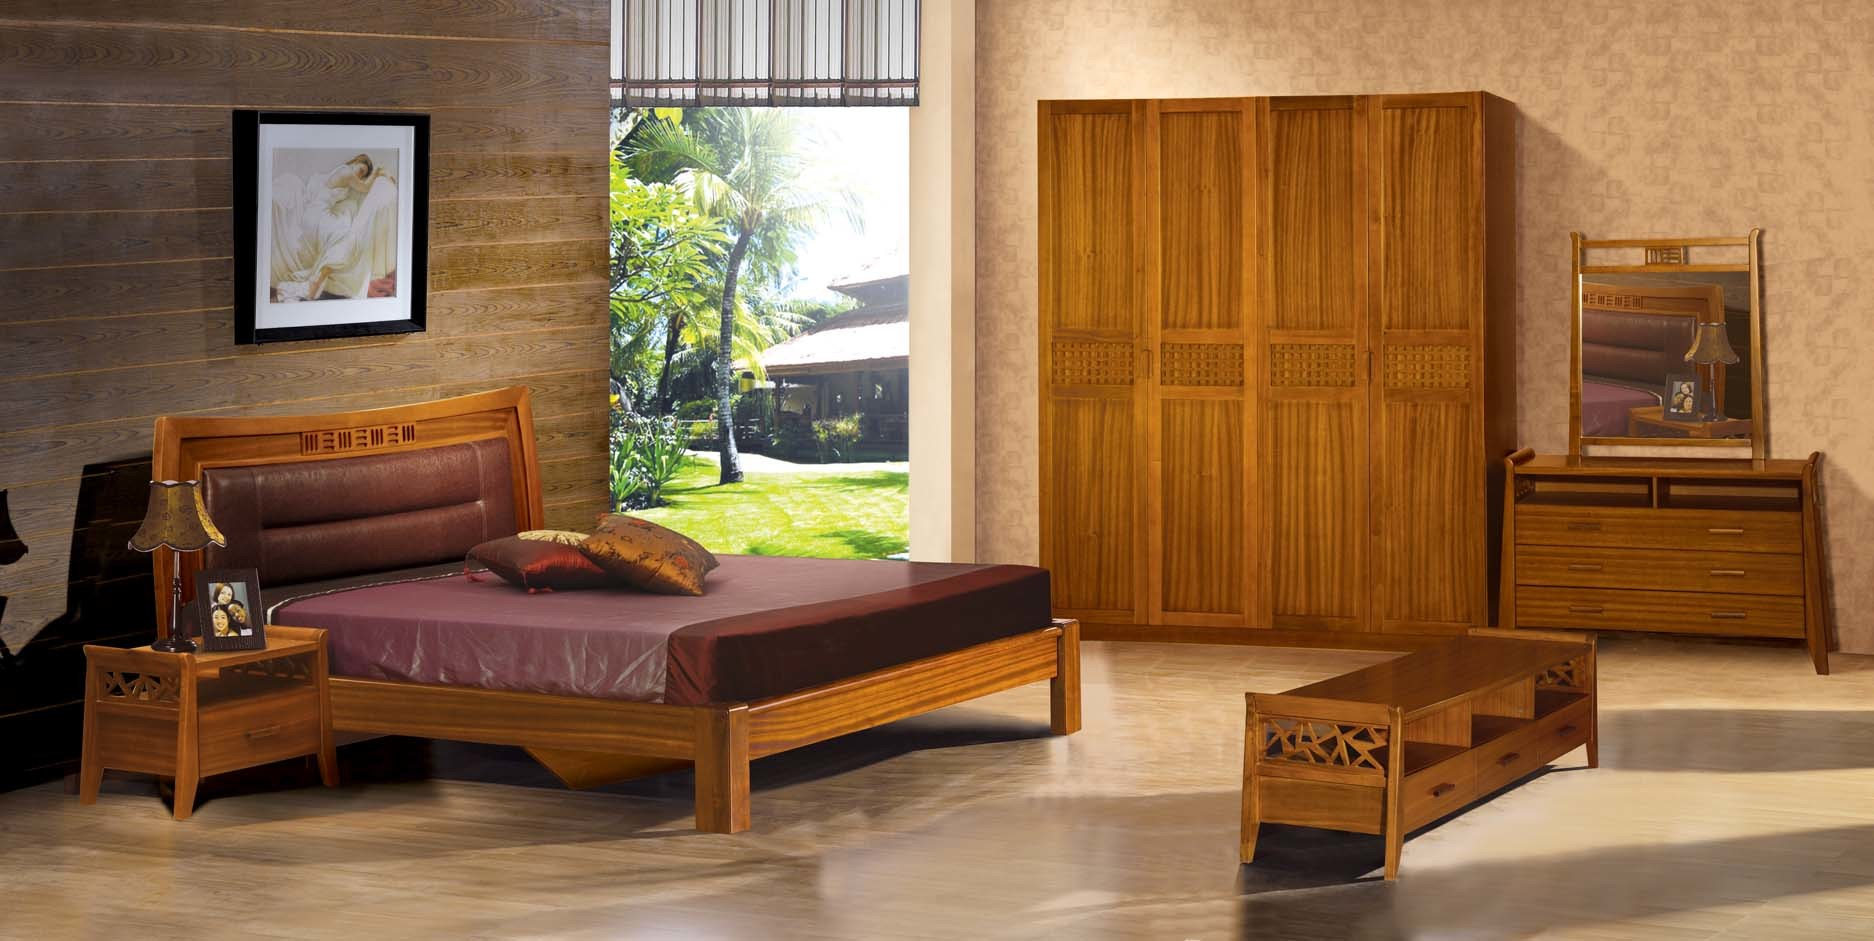 China Teak Wood Bedroom Set - China Bedroom Set, Bedroom Furniture